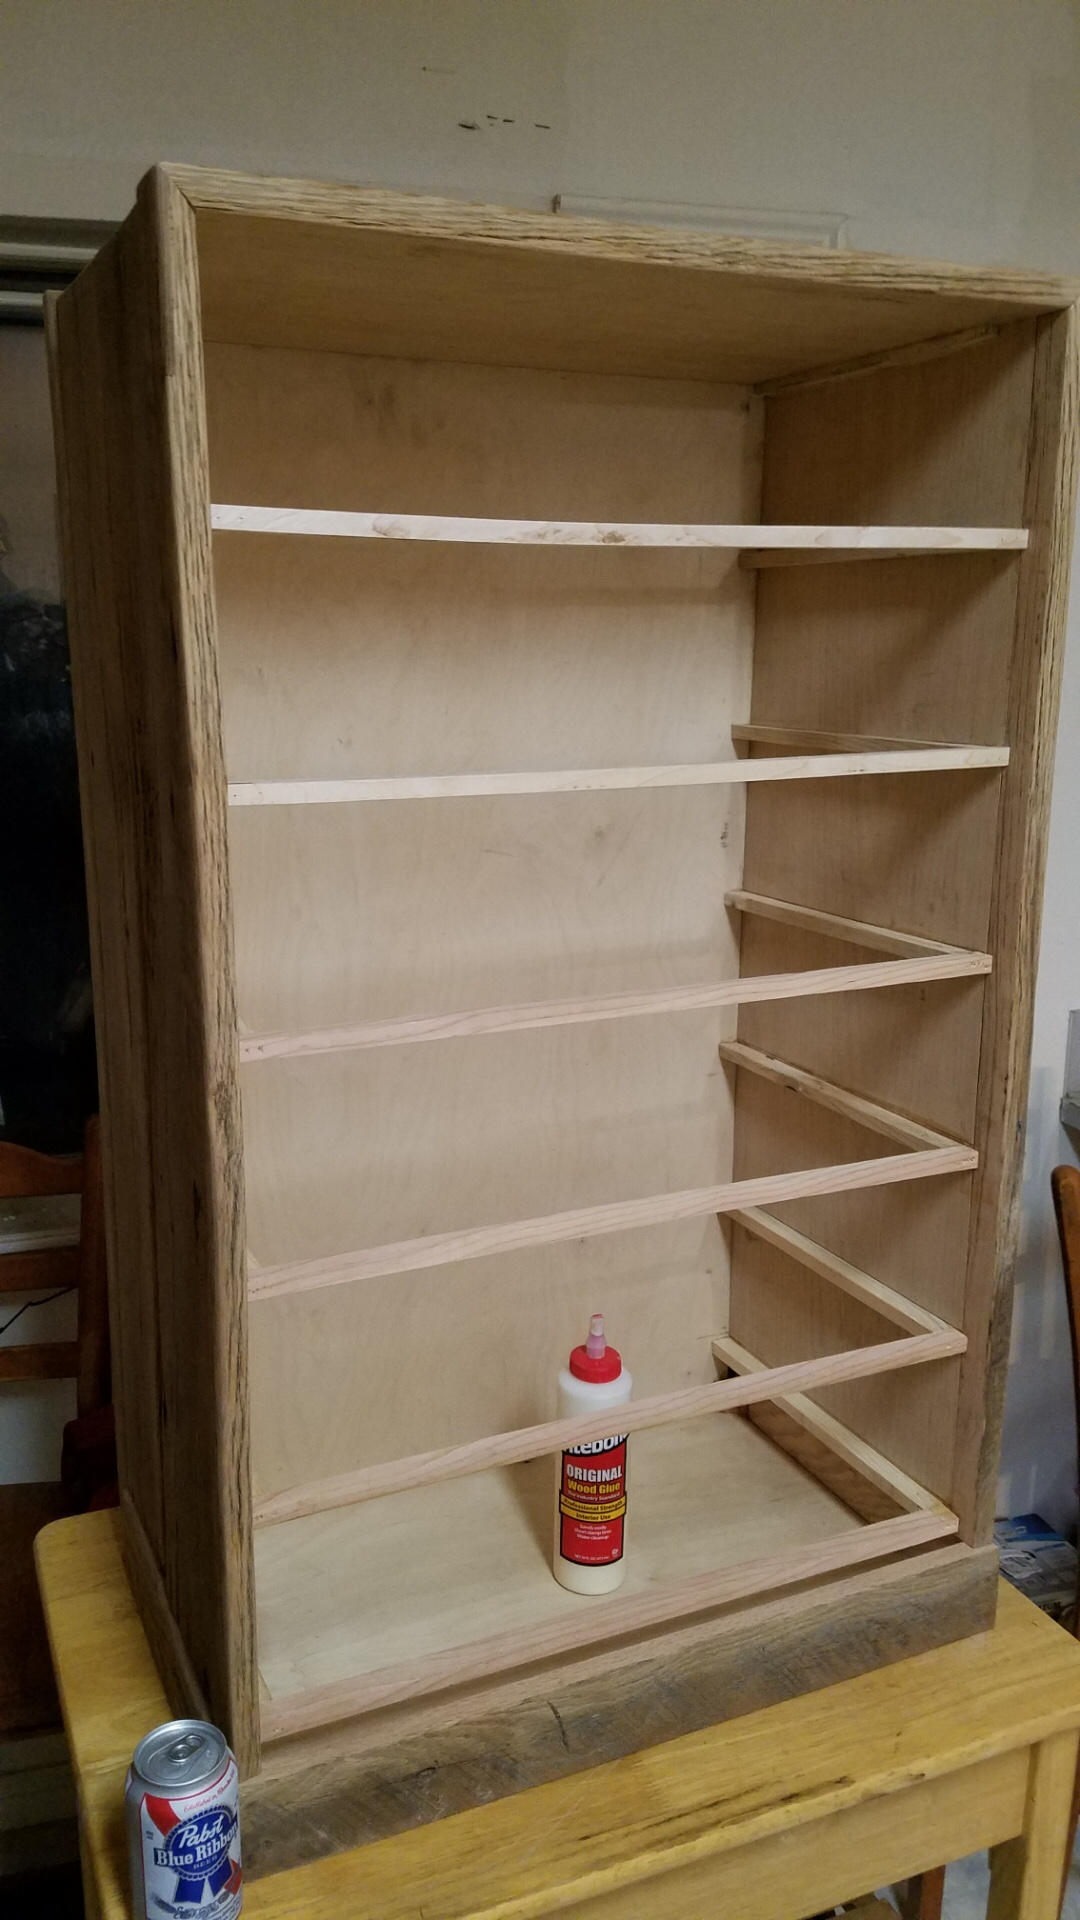 The frame of a midcentury modern oak barn wood cabinet with drawer rails installed